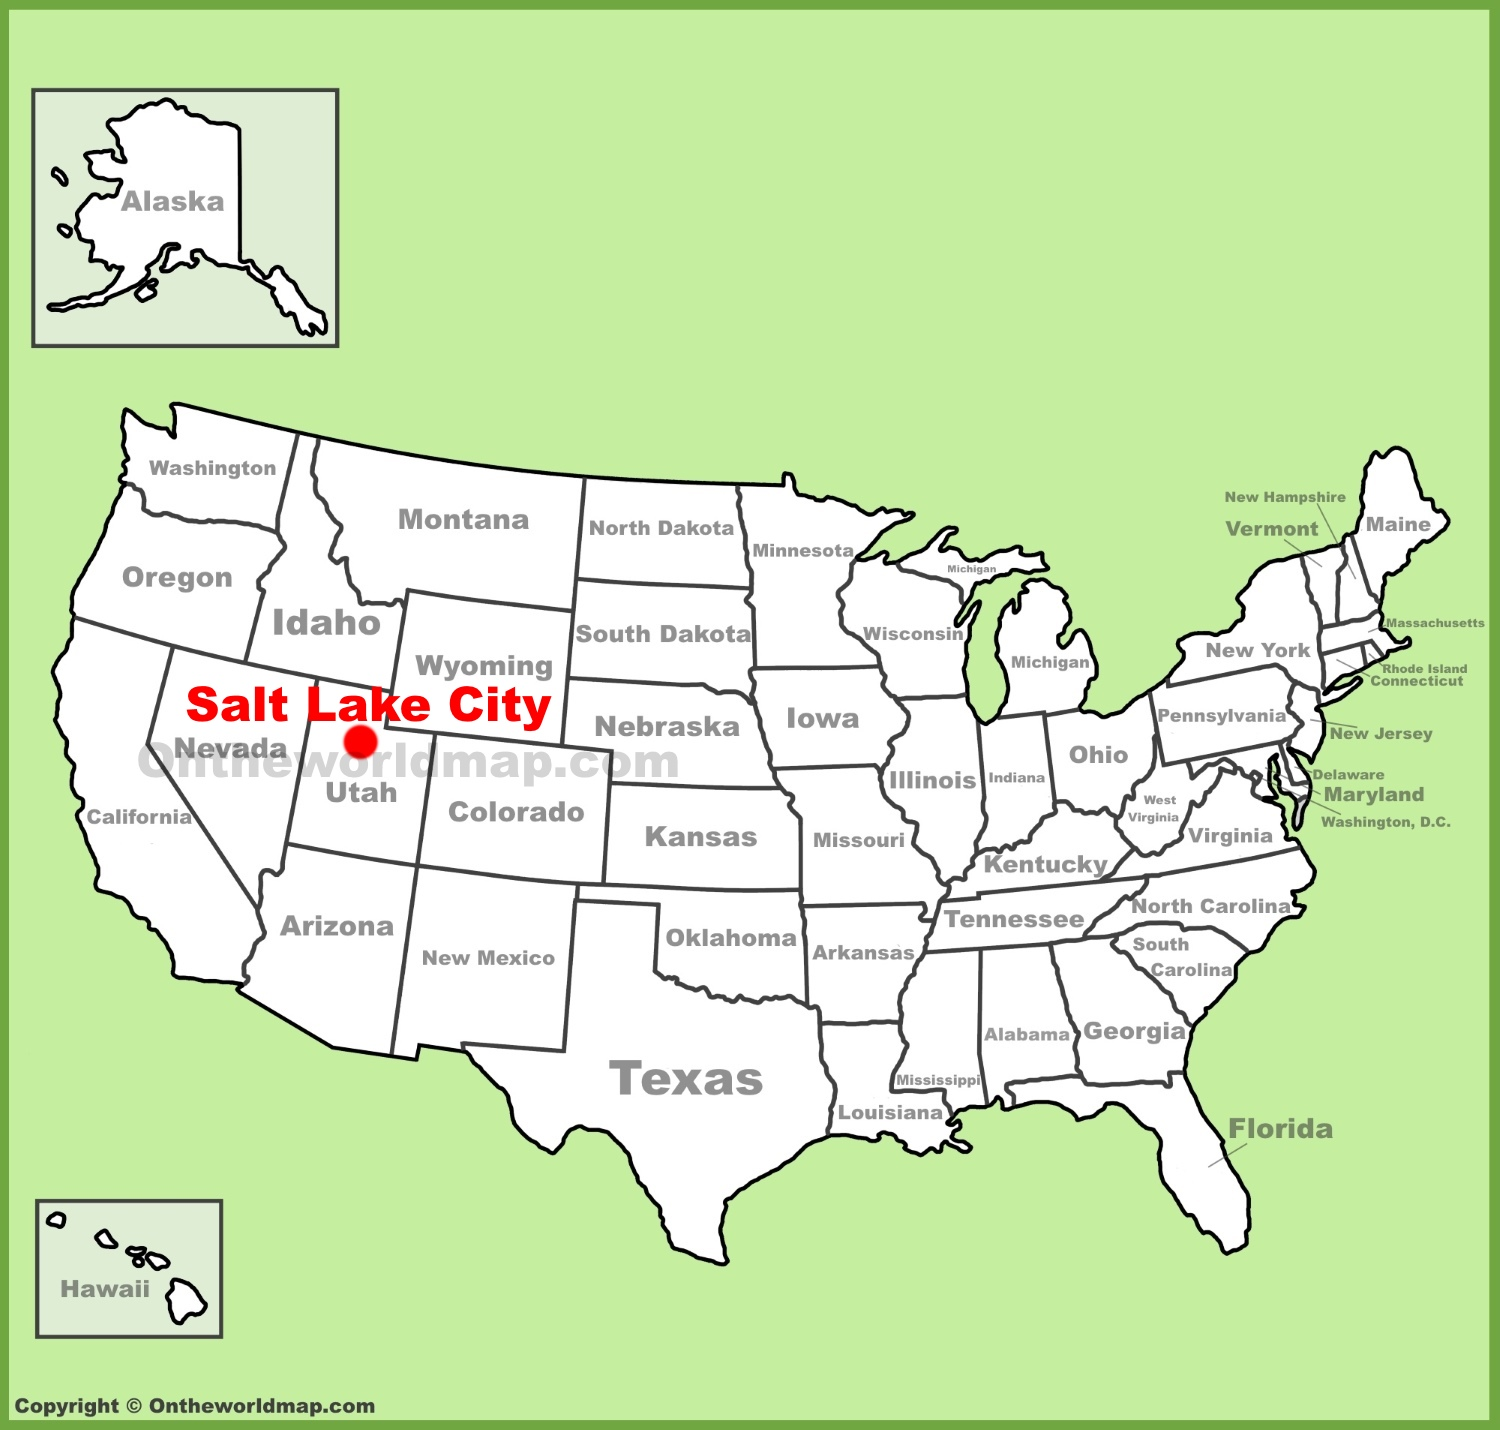 Map Salt Lake City Salt Lake City location on the U.S. Map